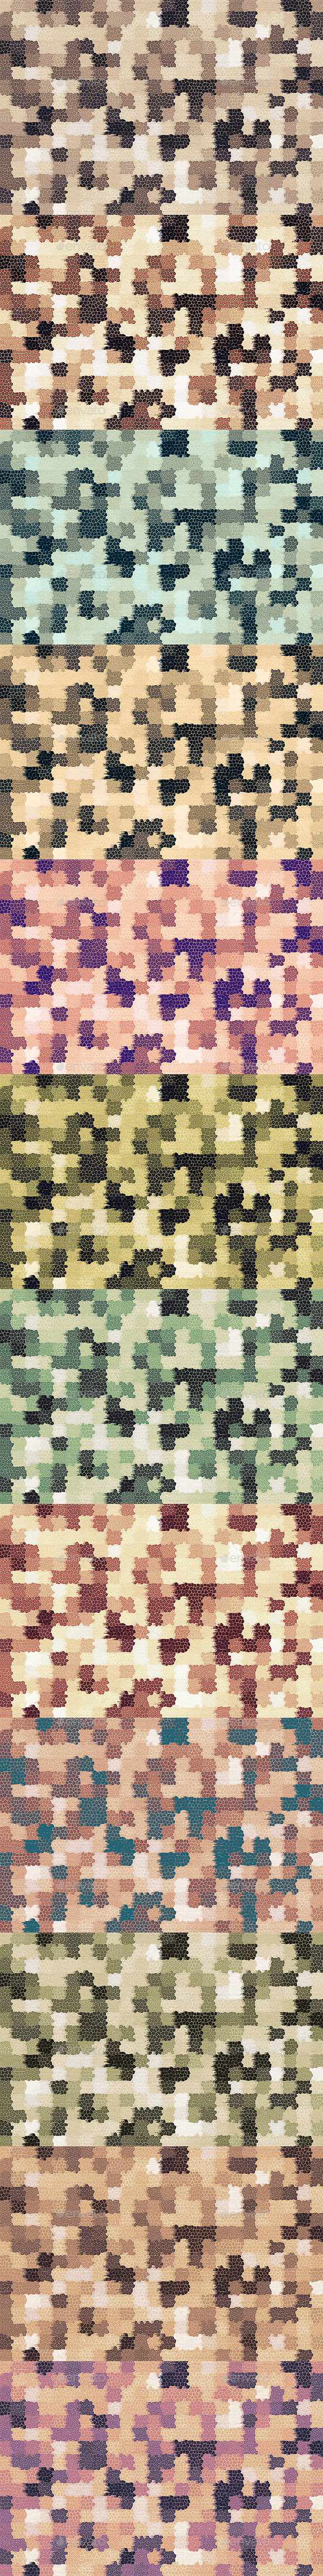 Abstract Pattern Backgrounds - Patterns Backgrounds